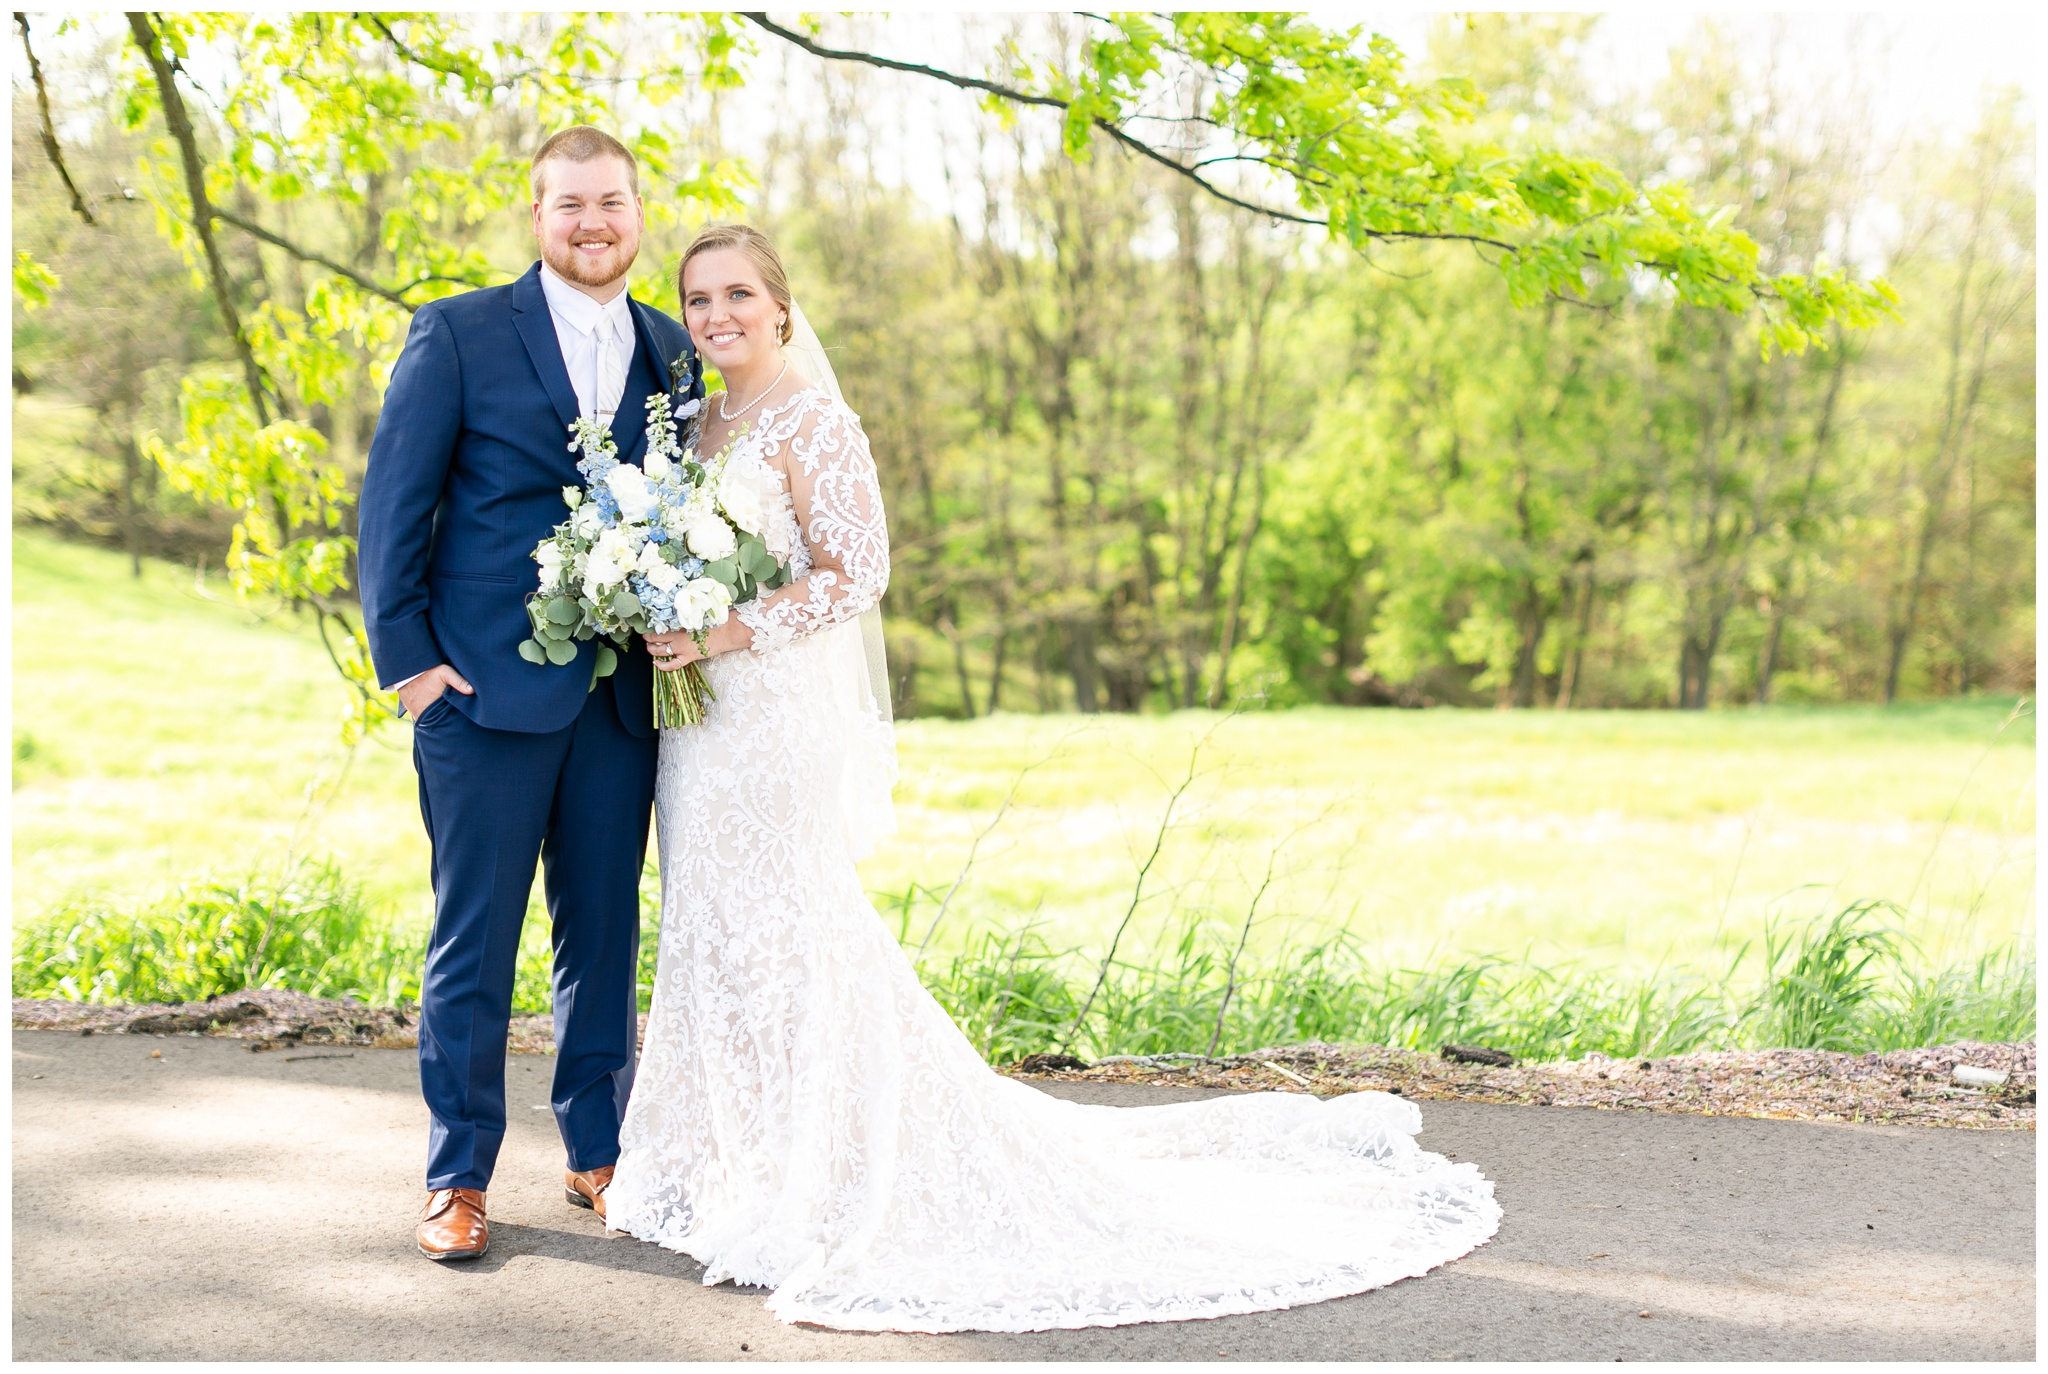 vennebu_hill_baraboo_wisconsin_wedding_madison_wisconsin_wedding_photographers_3032.jpg